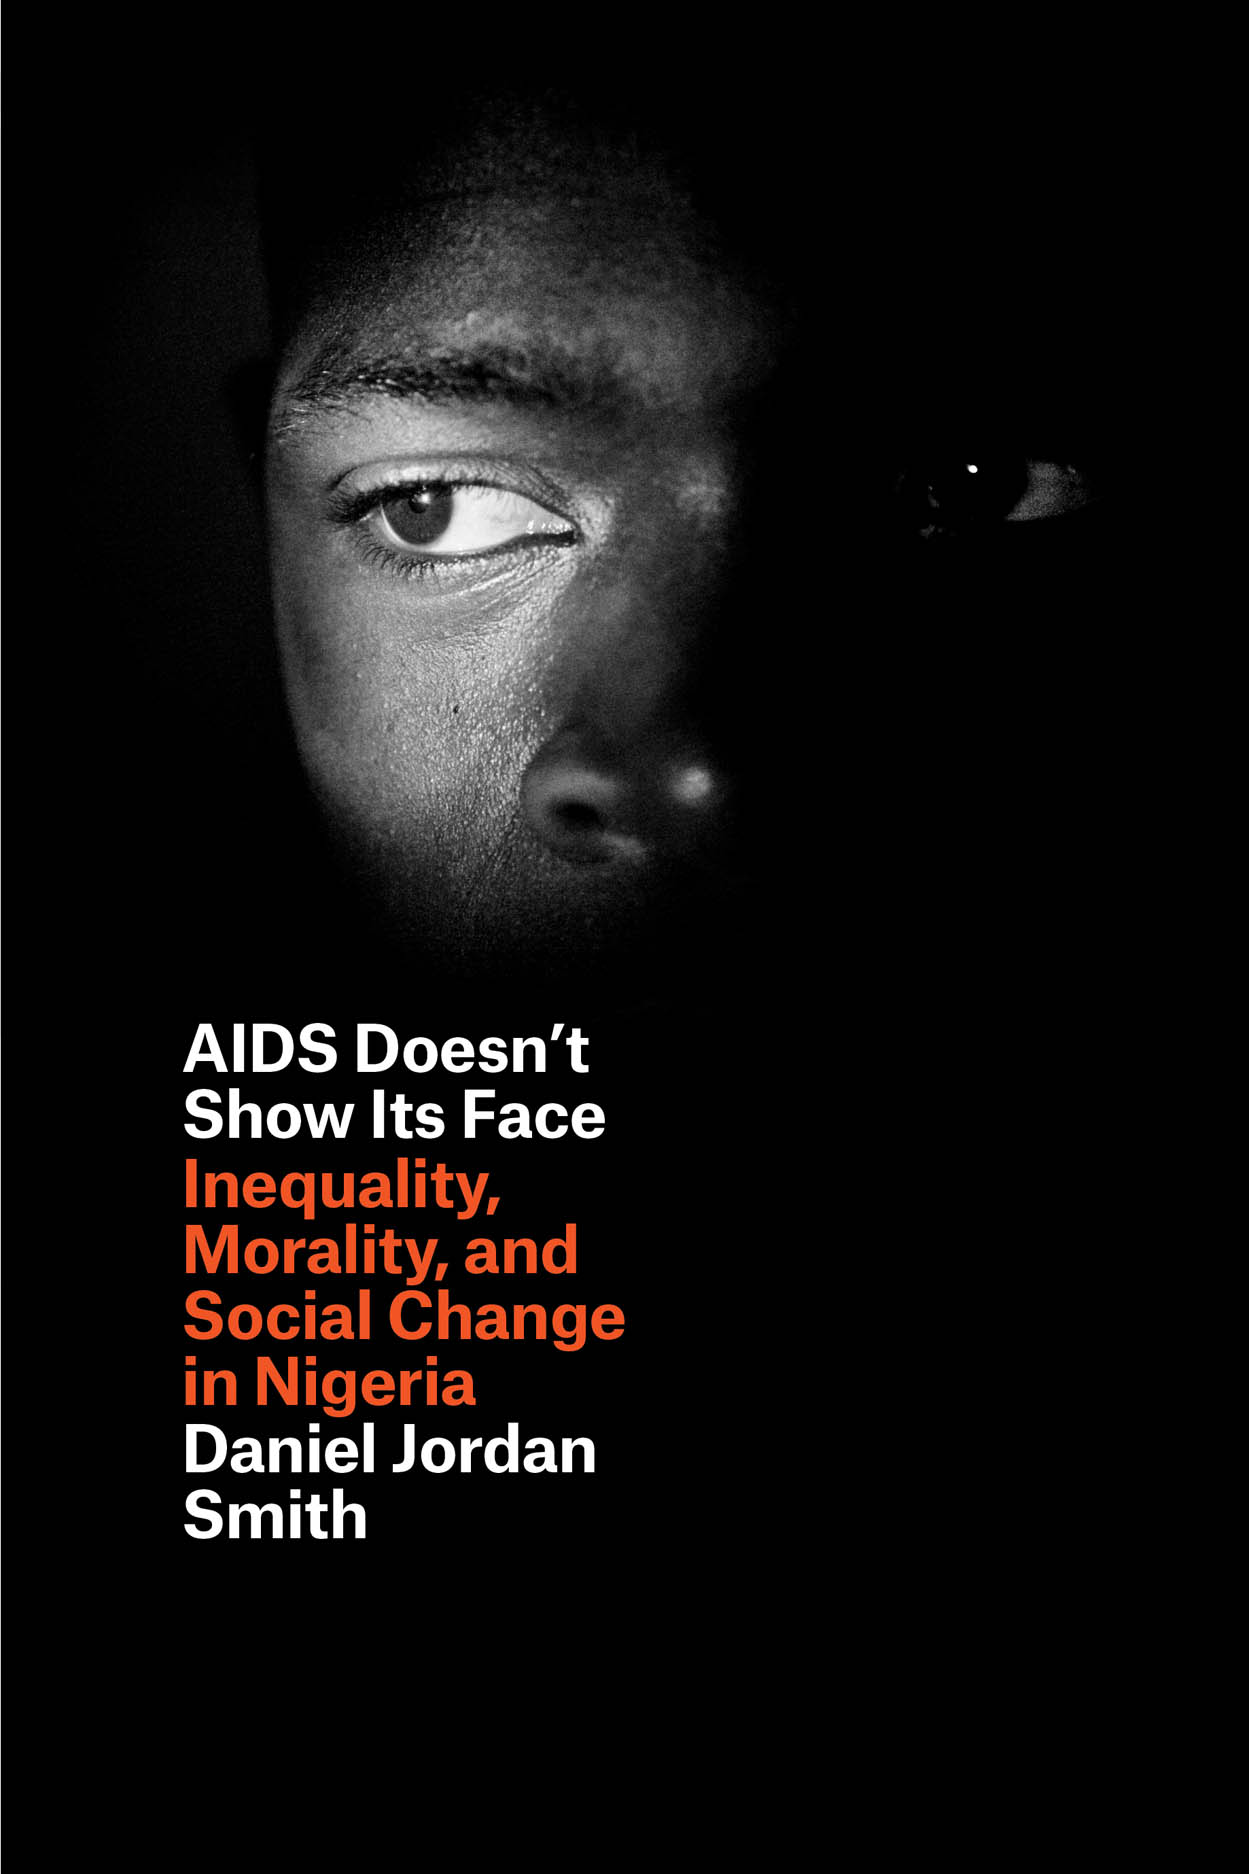 AIDS Doesn't Show Its Face